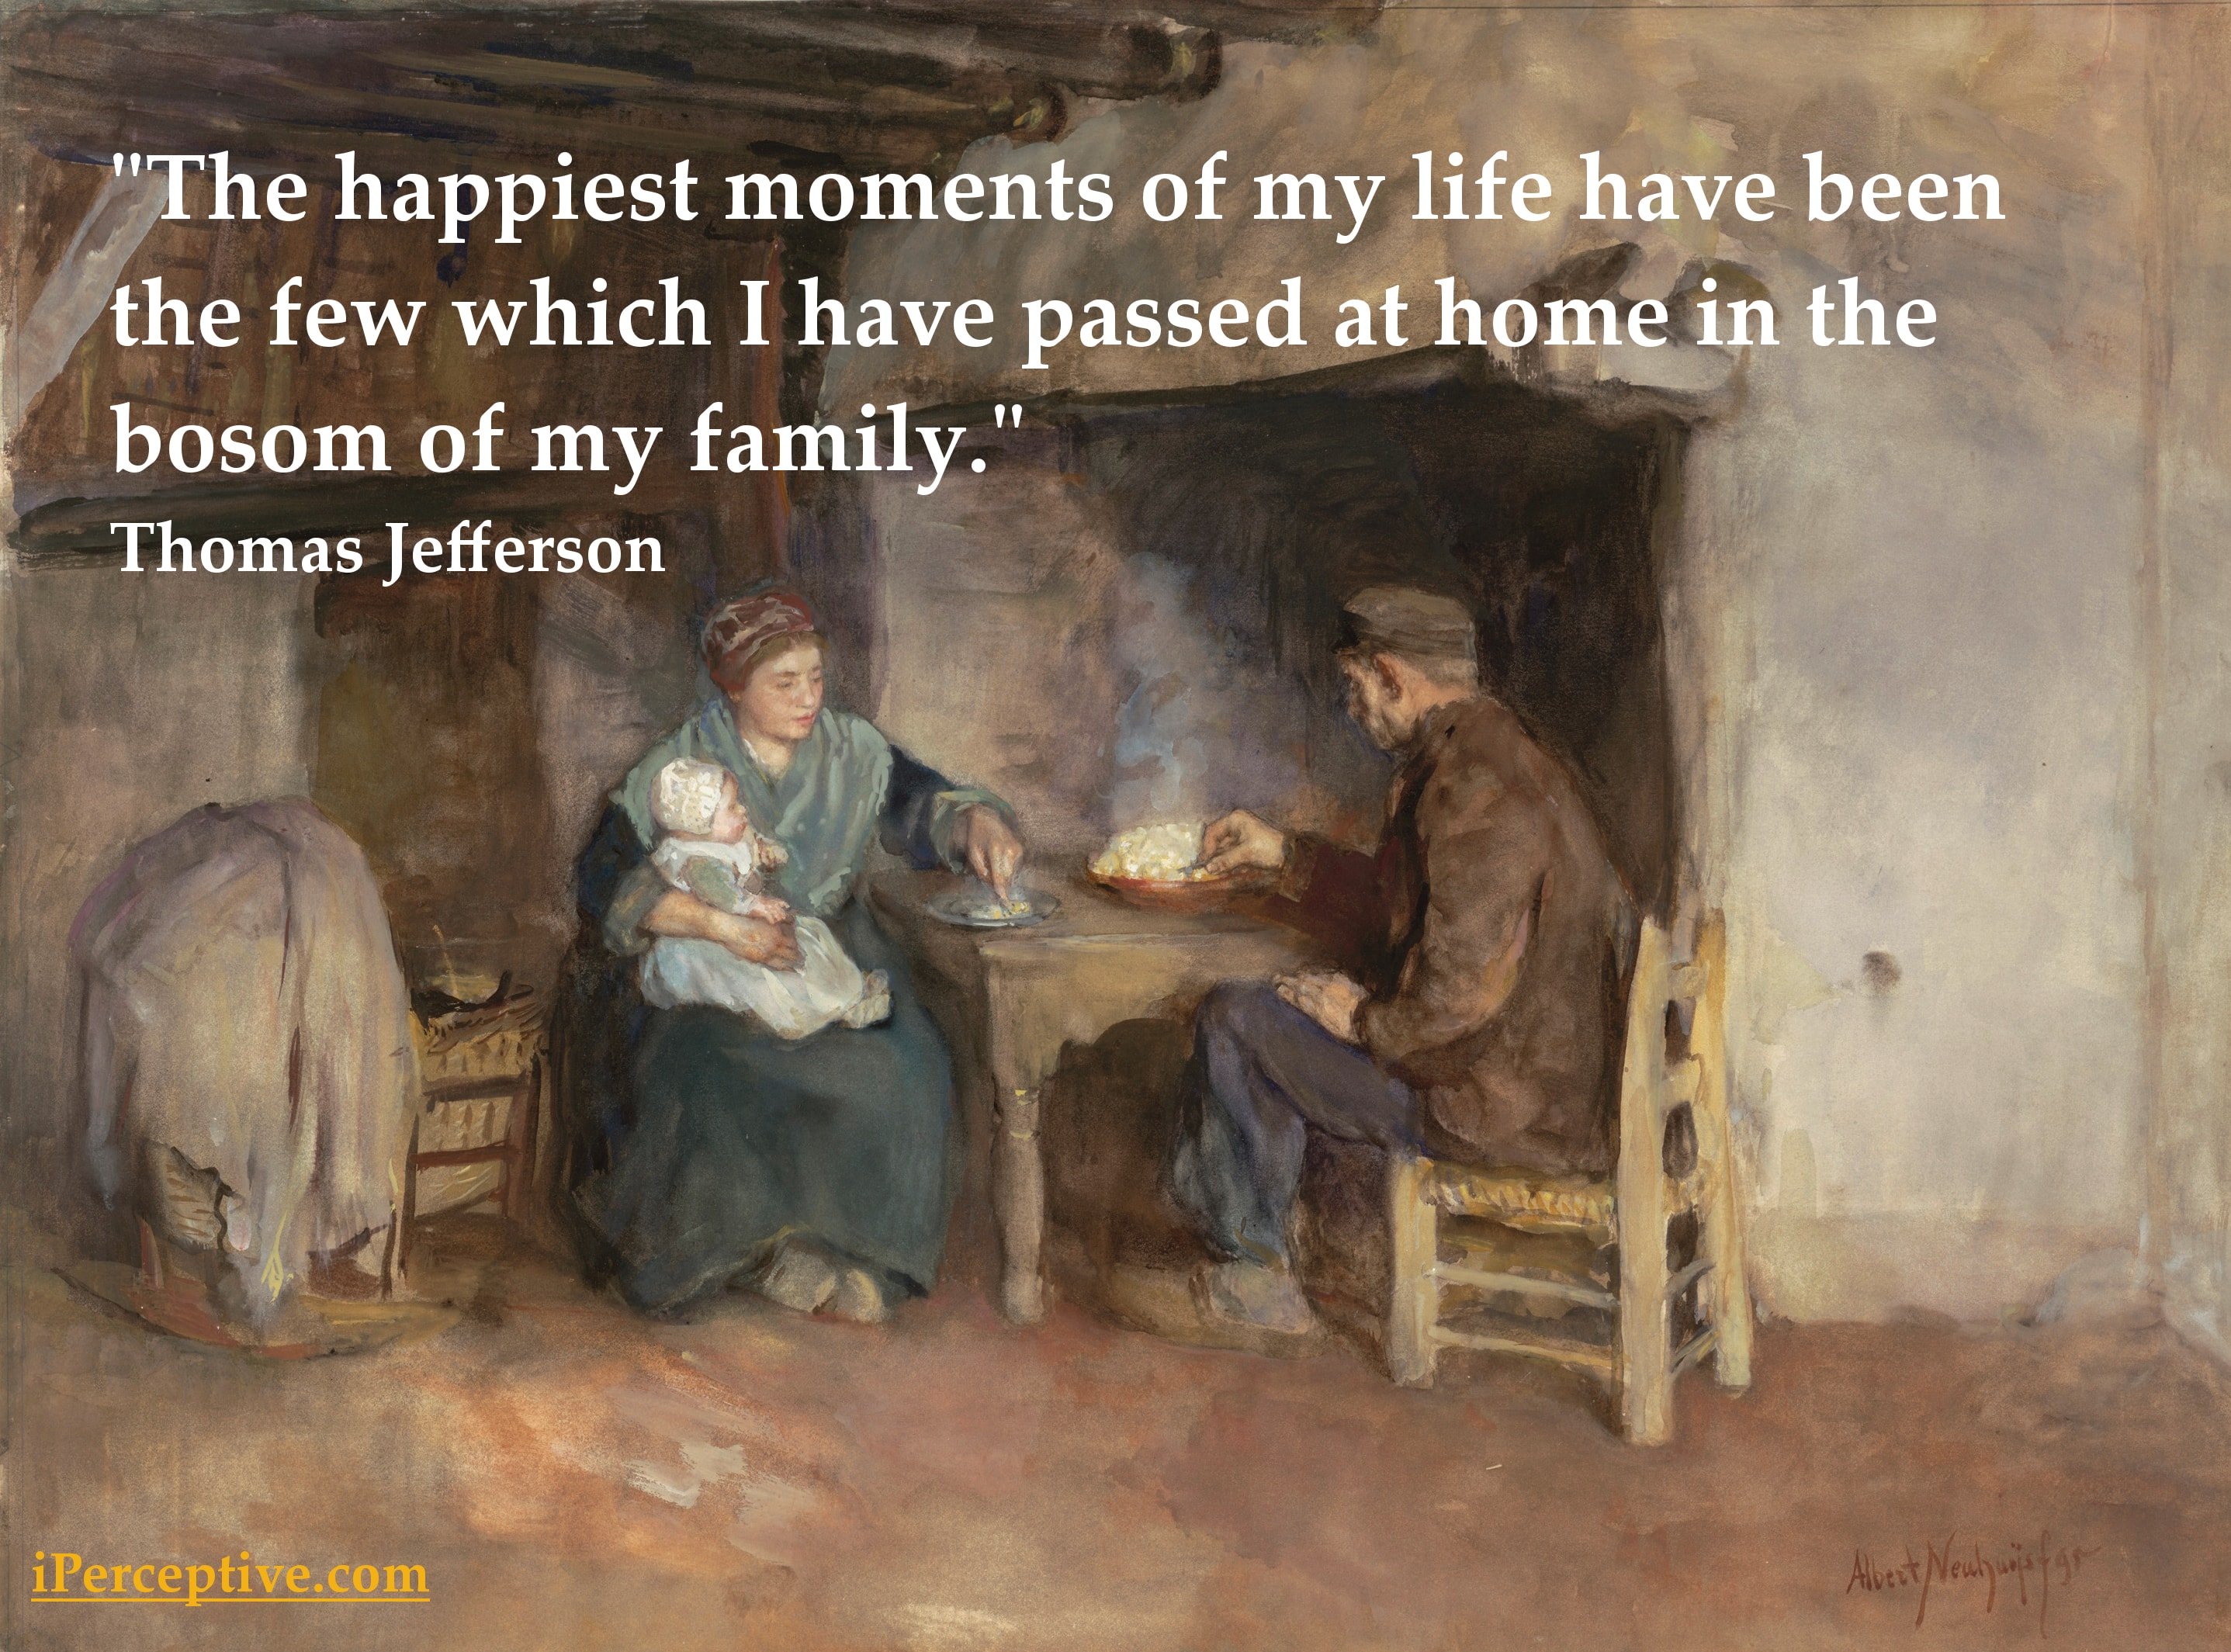 Jefferson Quote: The Happiest moments of my life have been...